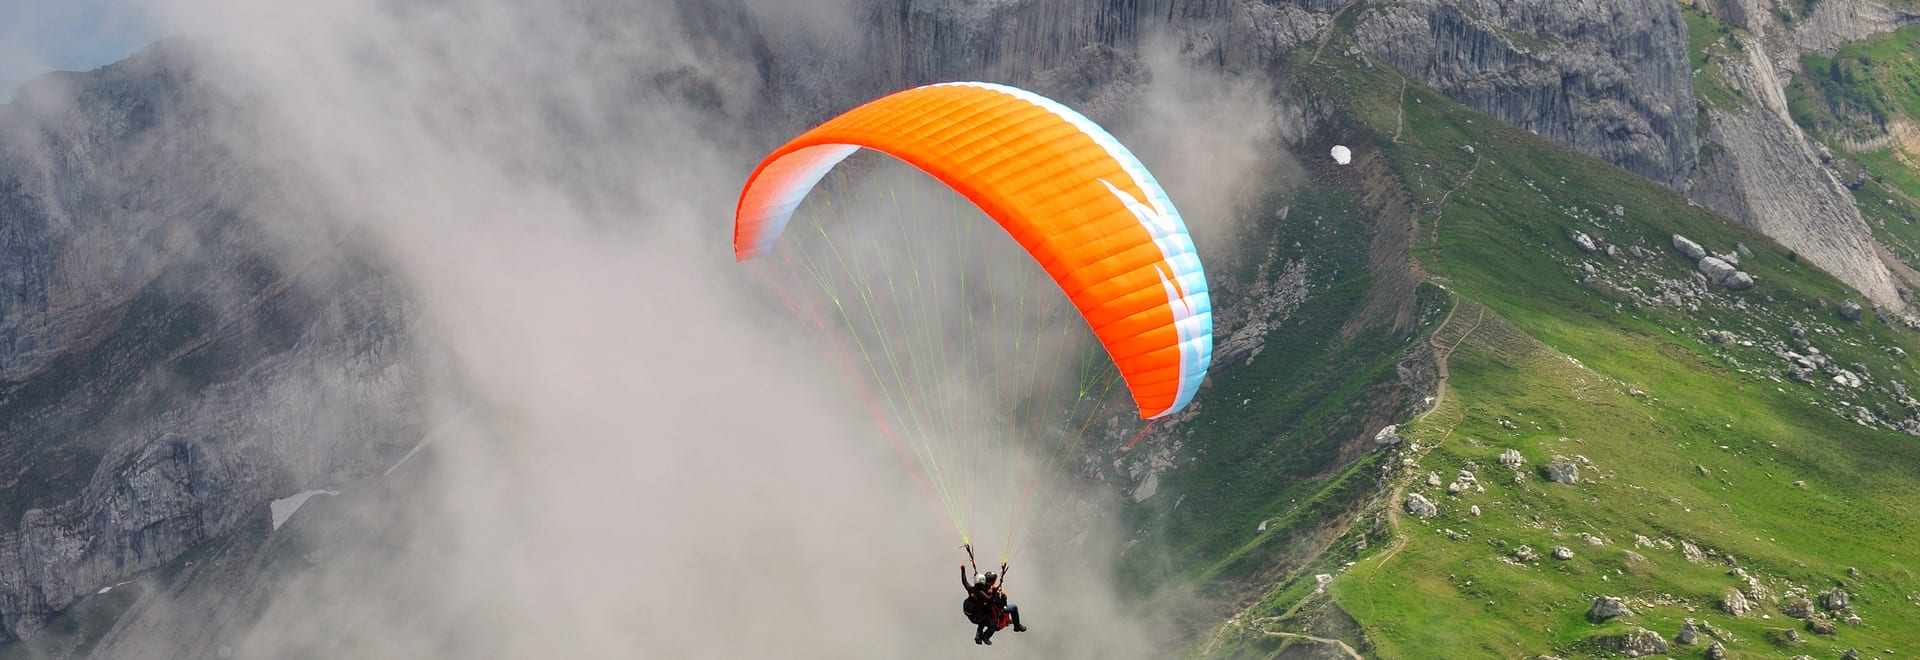 1488862893_paragliding-in-india_1438933021.jpg